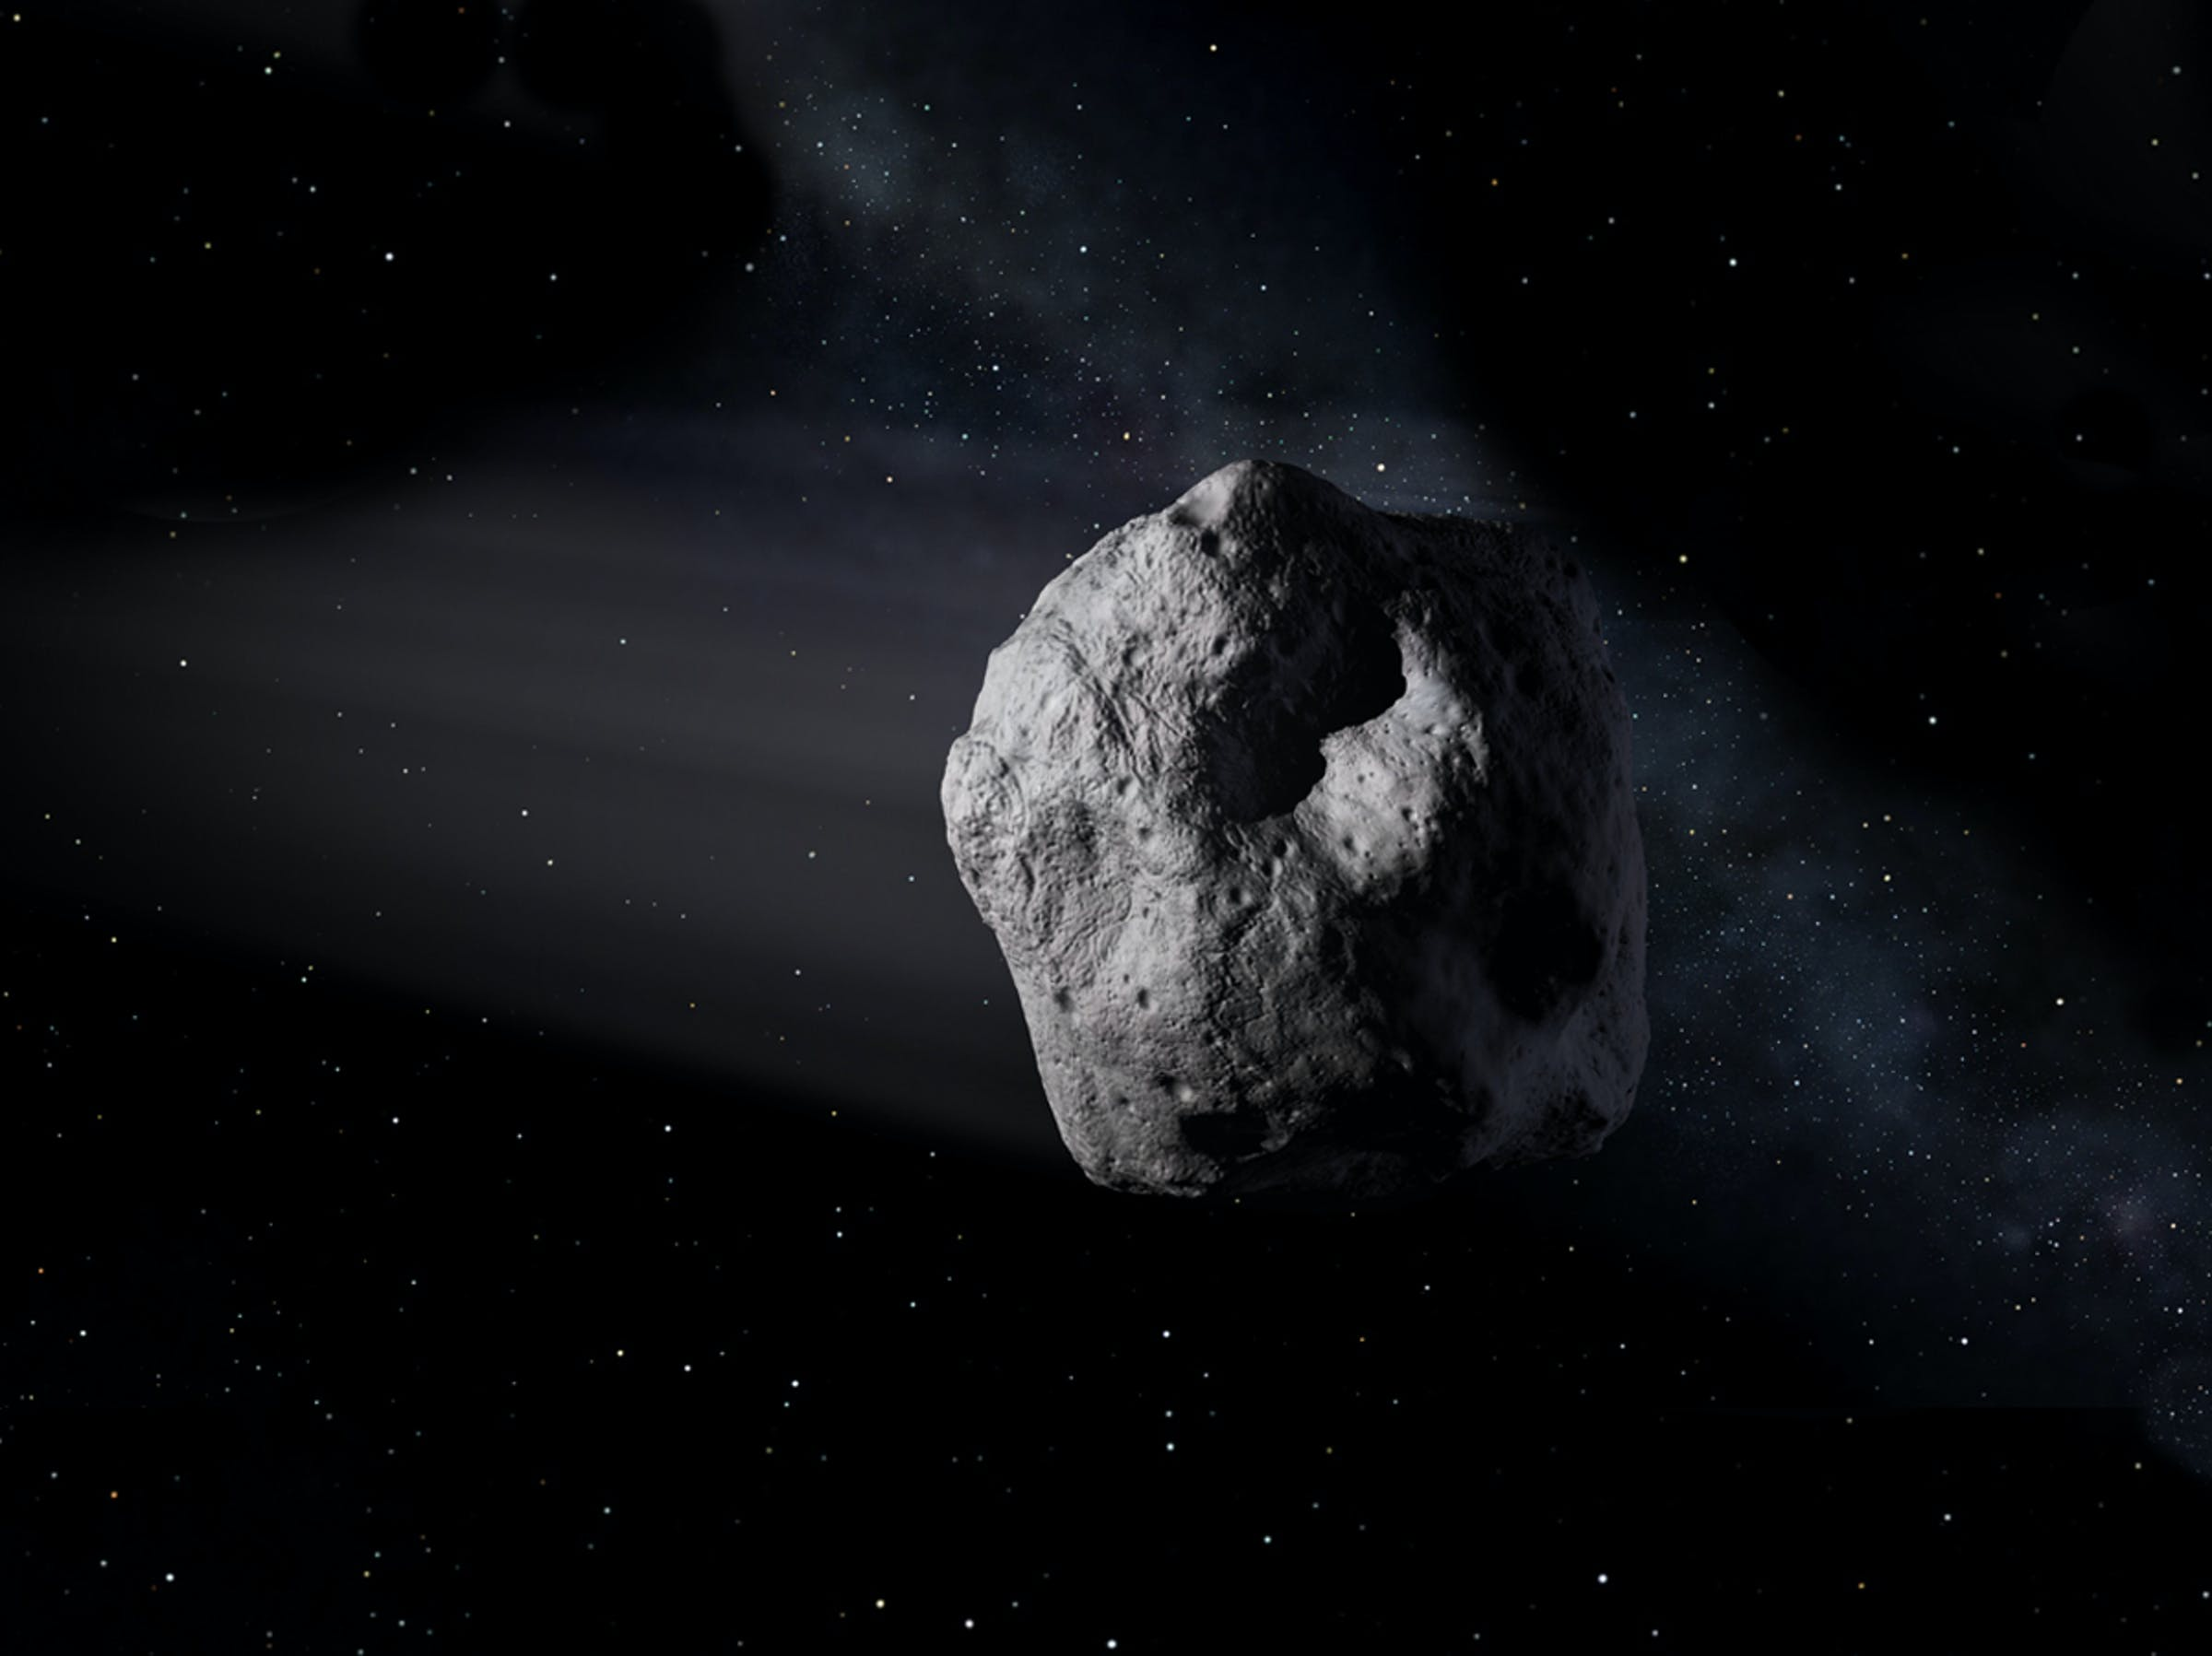 The alien monsters from 'A Quiet Place' could have ridden an asteroid just like this one and somehow survived it crashing into Earth.